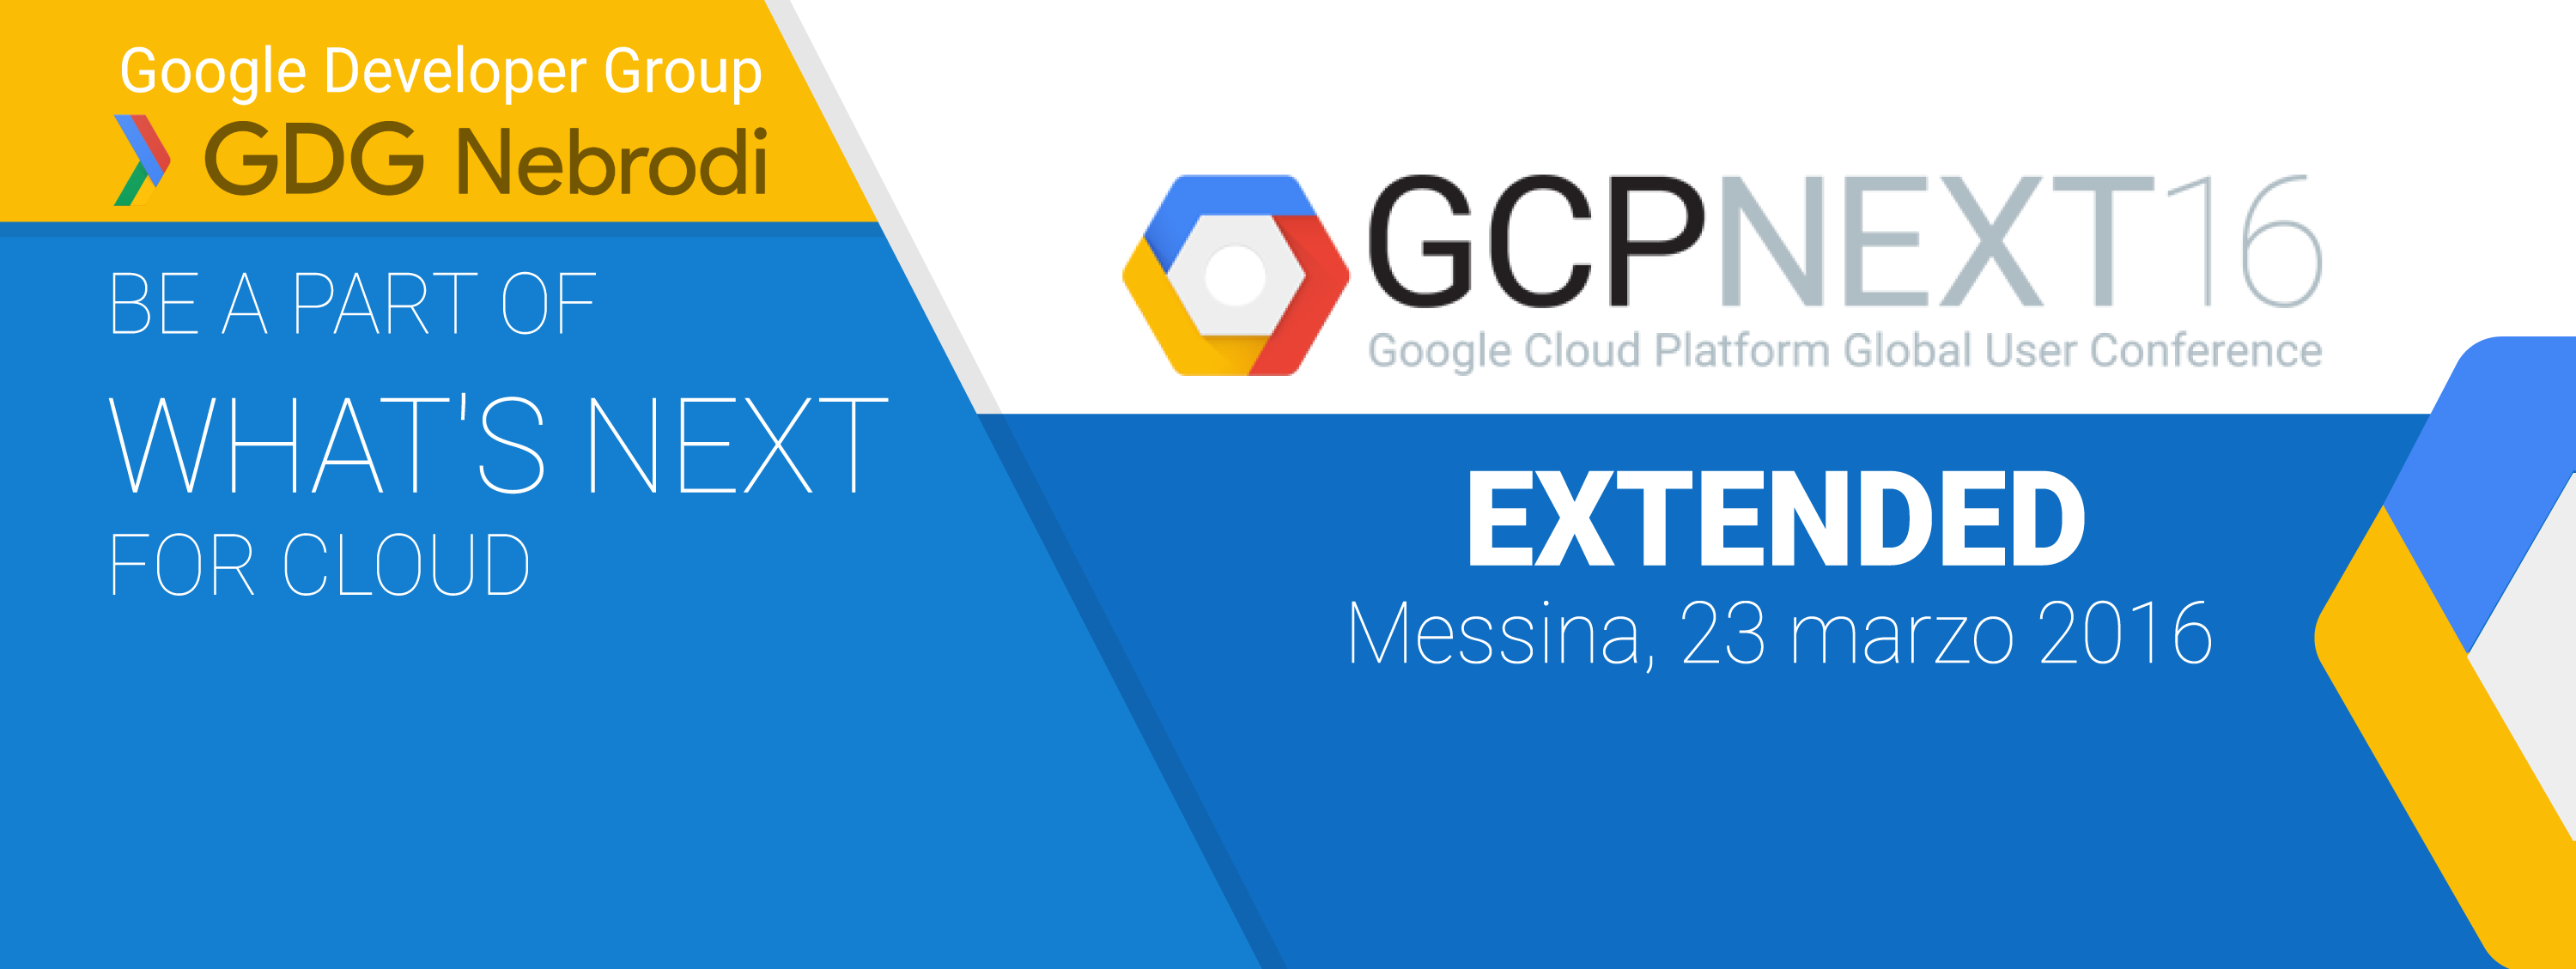 Google Cloud Platform Conference 2016